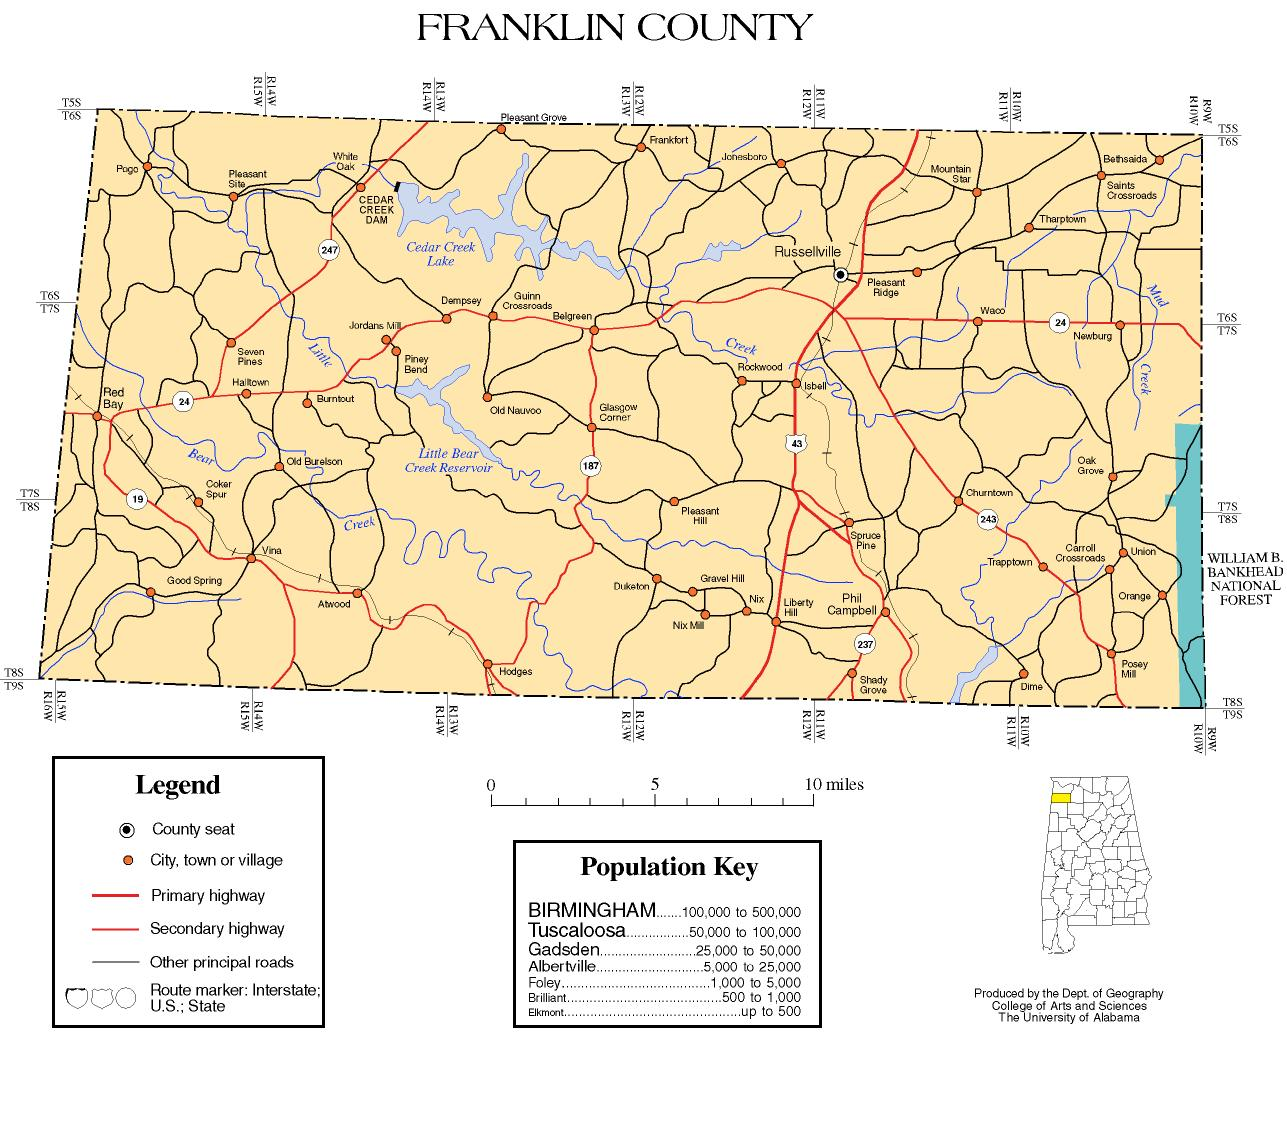 Franklin County Property Tax Information